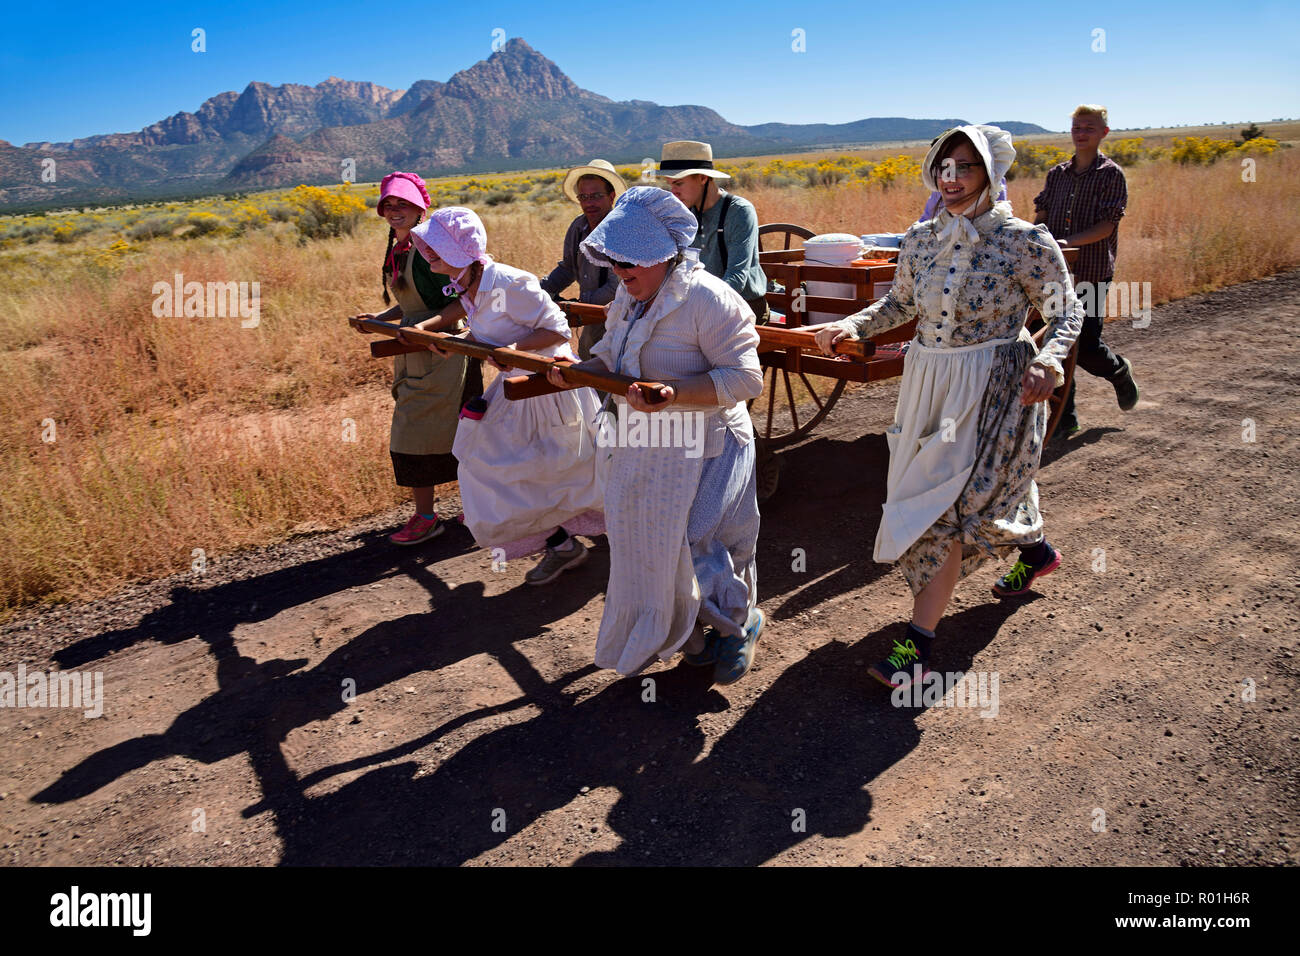 Mormons with handcarts recreate the harsh conditions of colonizing the American West, Hurricane, Utah, USA - Stock Image